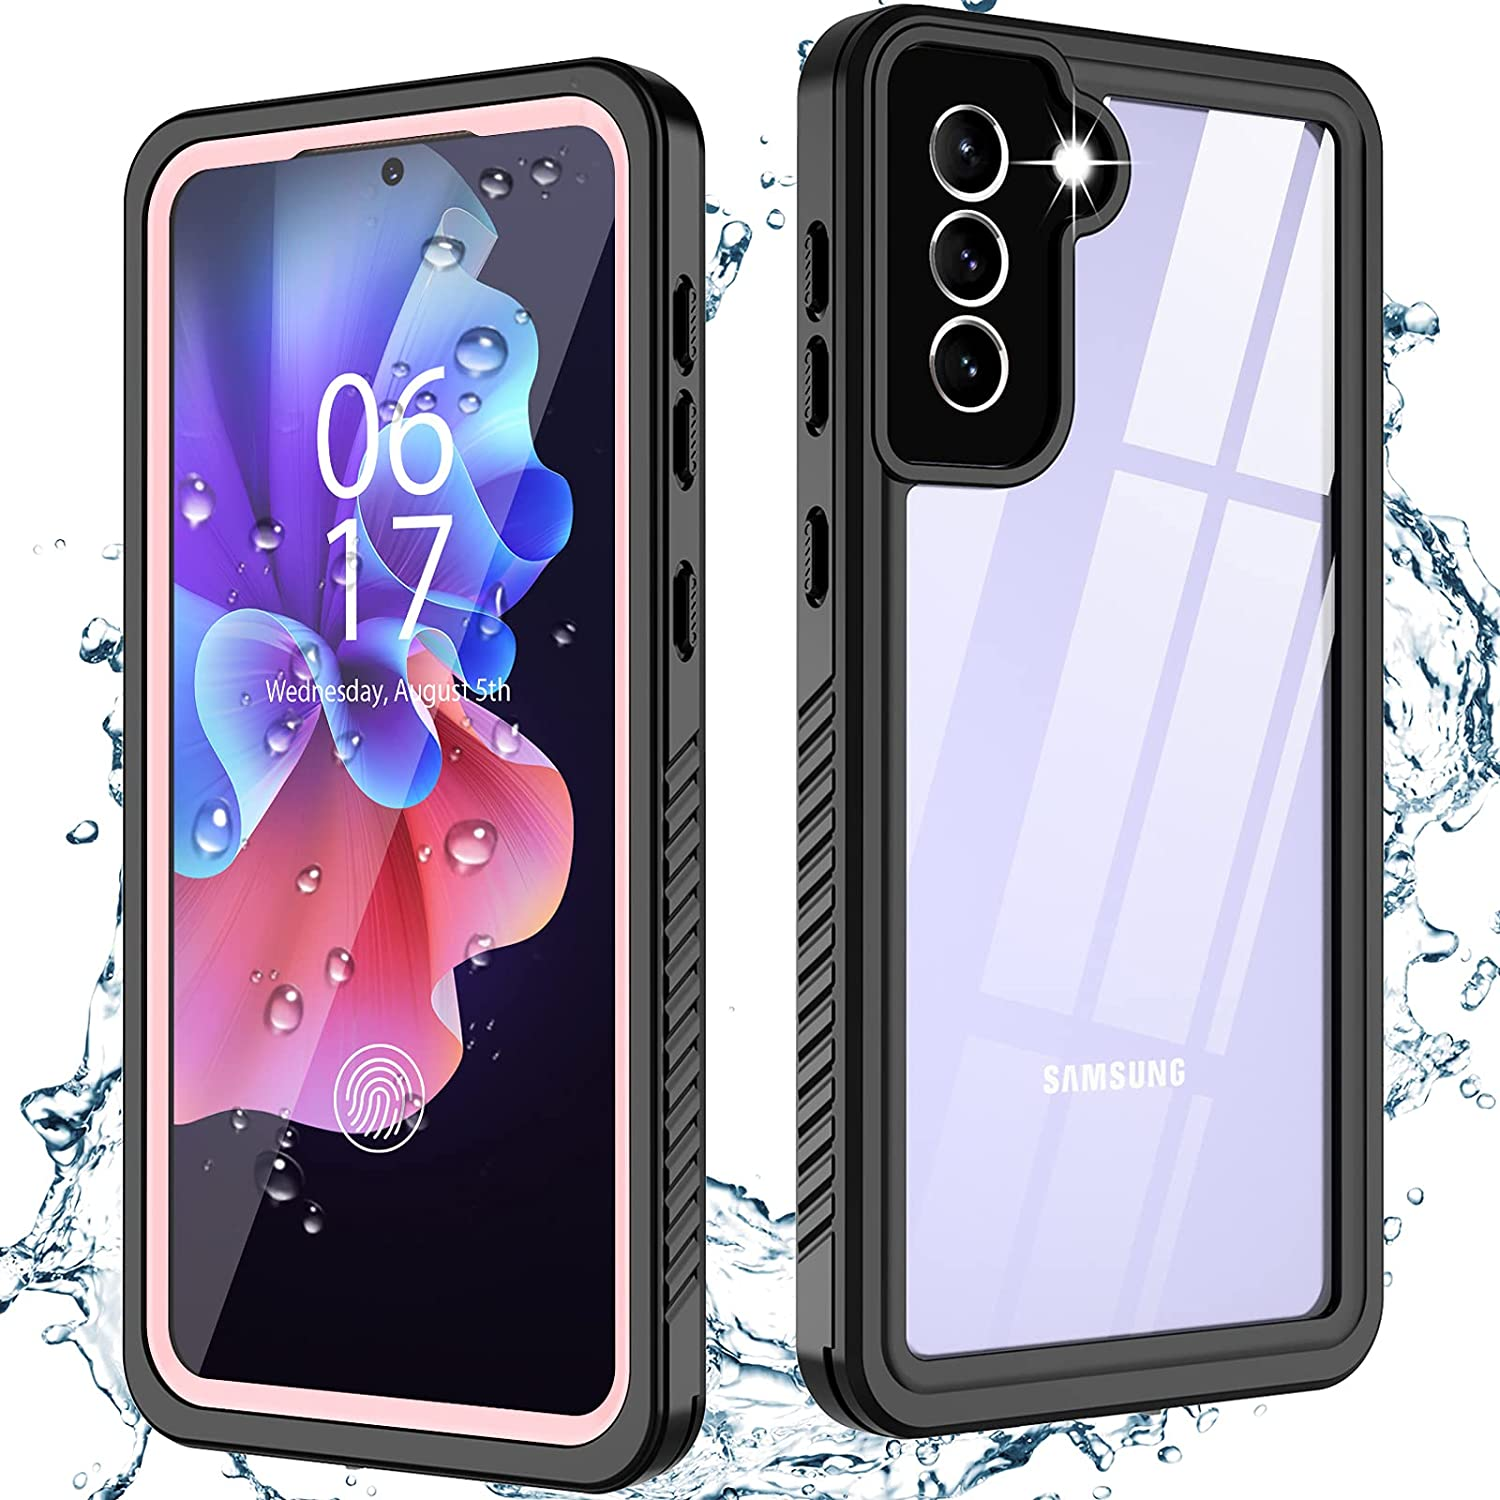 Oterkinfor Samsung Galaxy S21 Case,S21 Waterproof Casewith Built-in Screen Protector Dustproof Shockproof 360 Full Body Underwater Case for Samsung S21 5G 6.2inch (Pink)